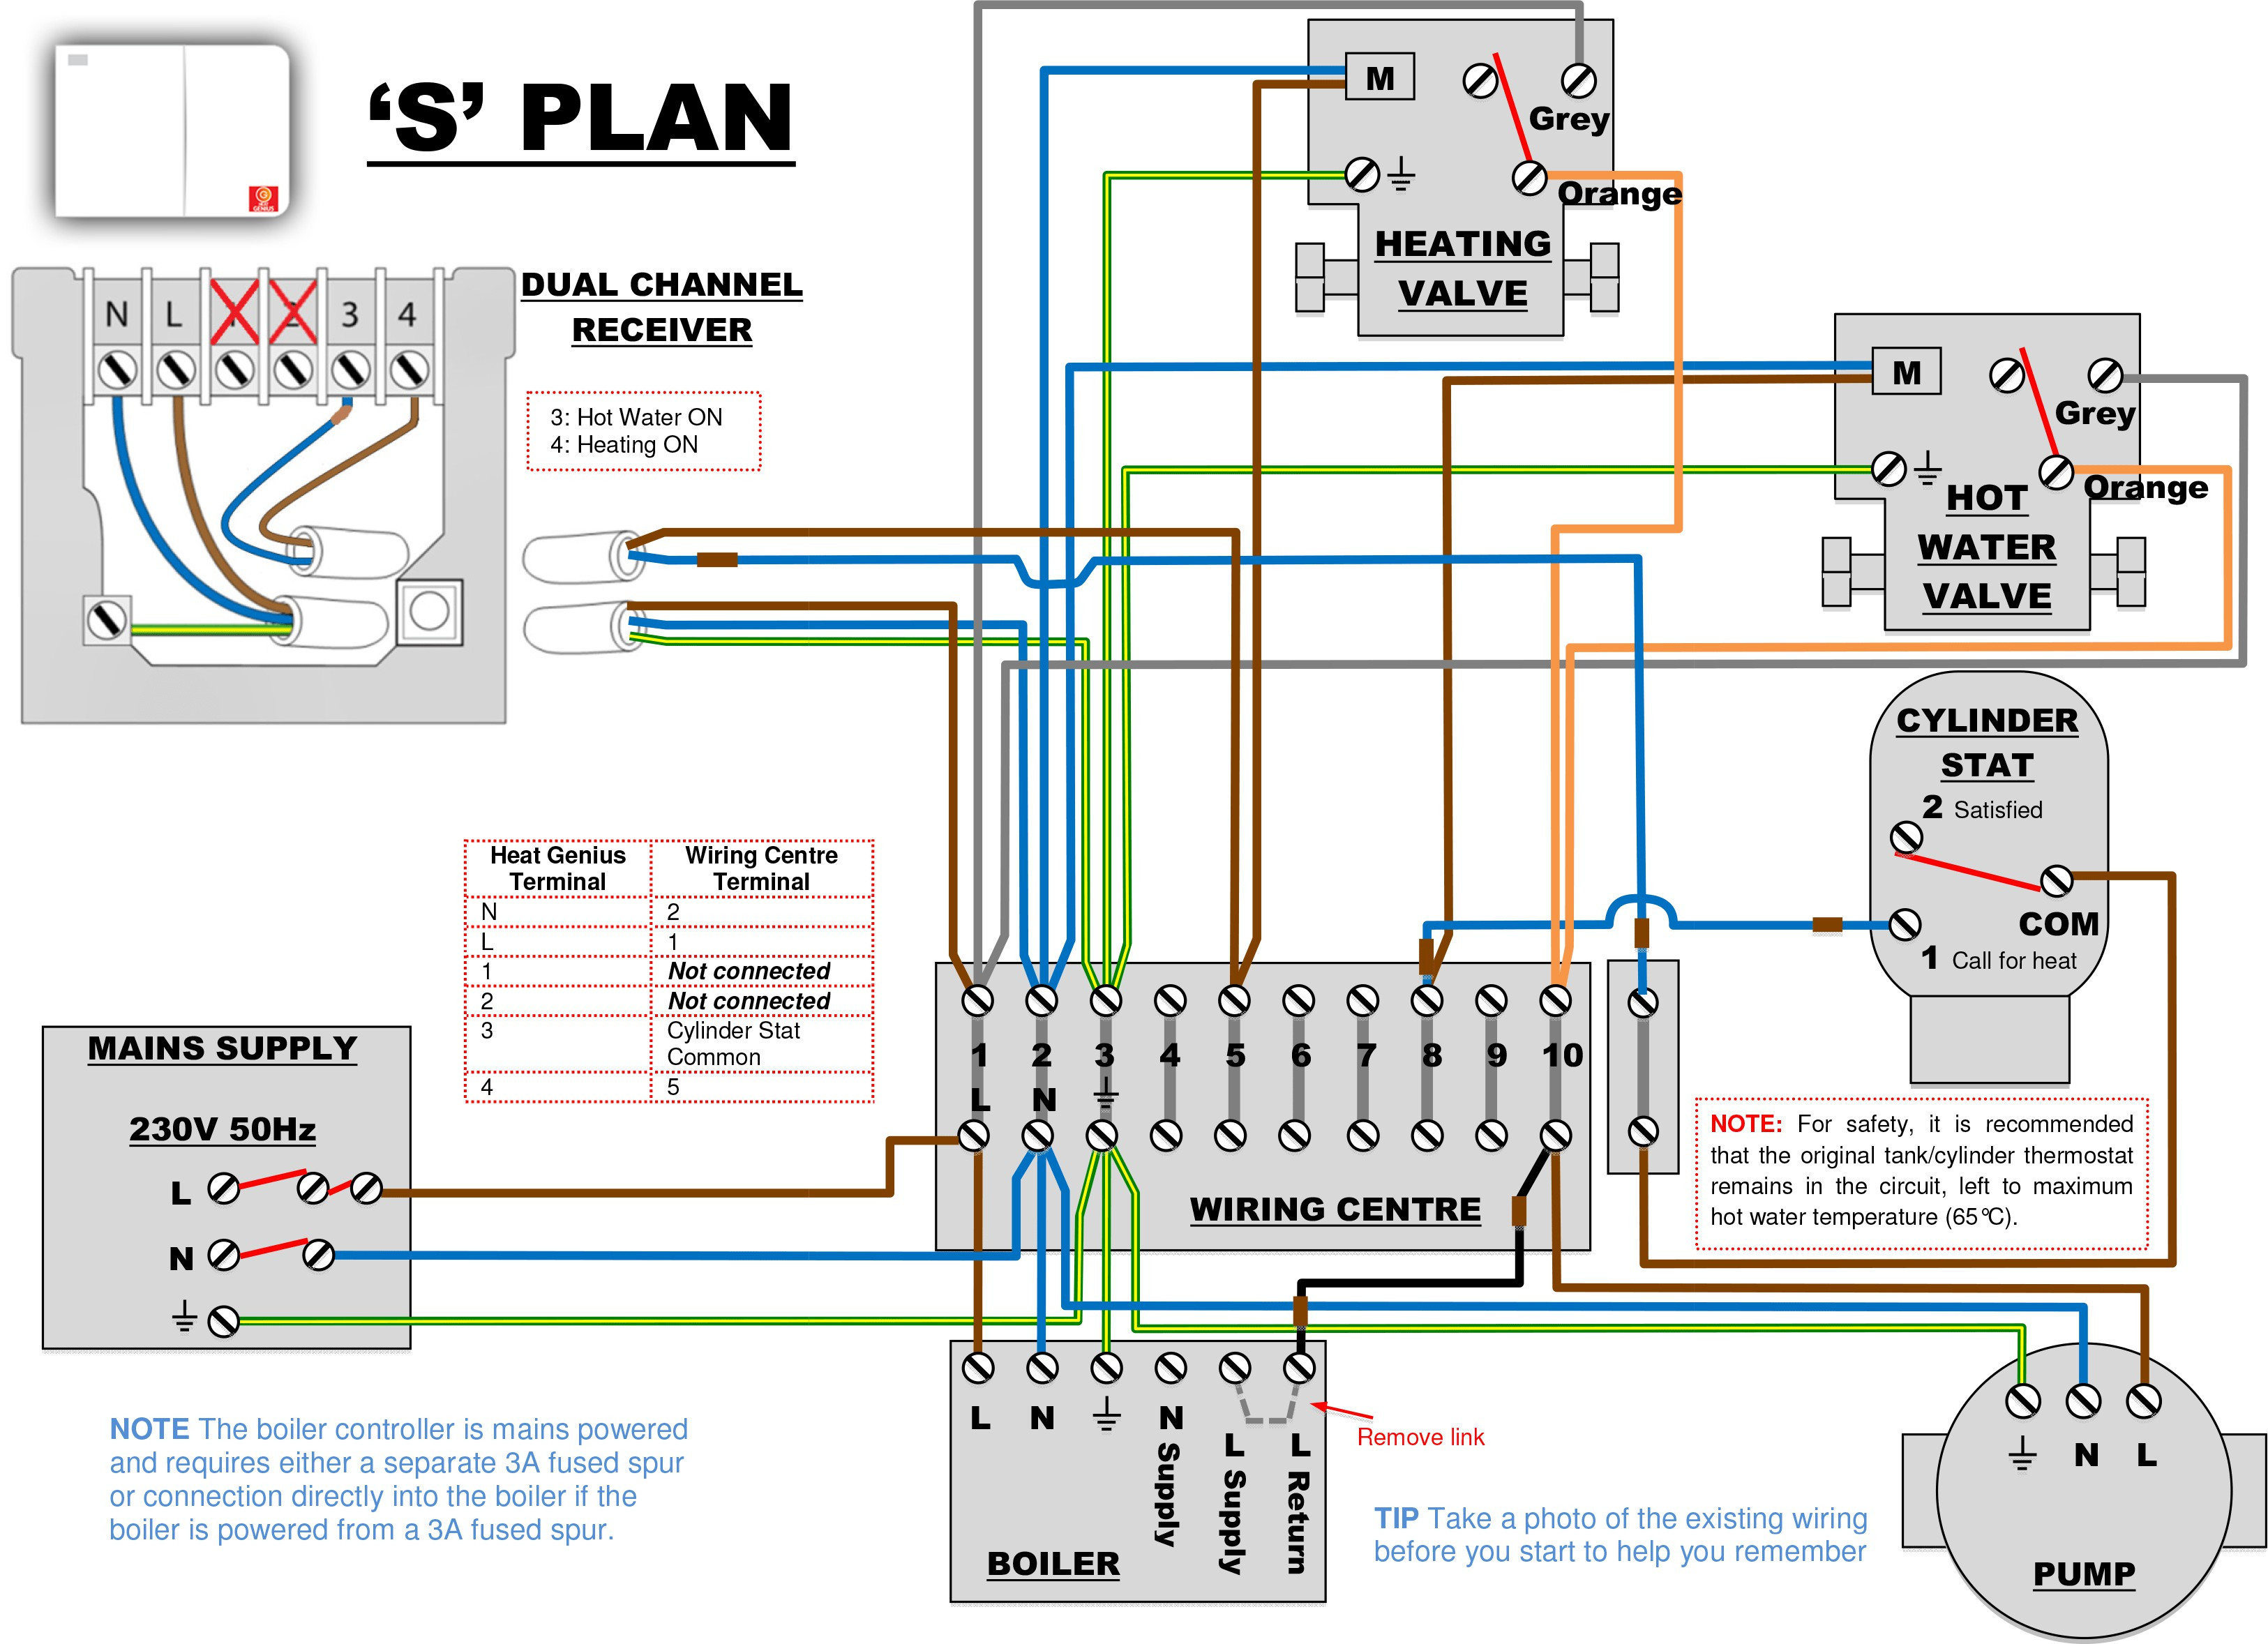 Nest Room Thermostat Wiring Diagram | Manual E-Books - Nest T3007Es Wiring Diagram With Heat Pump